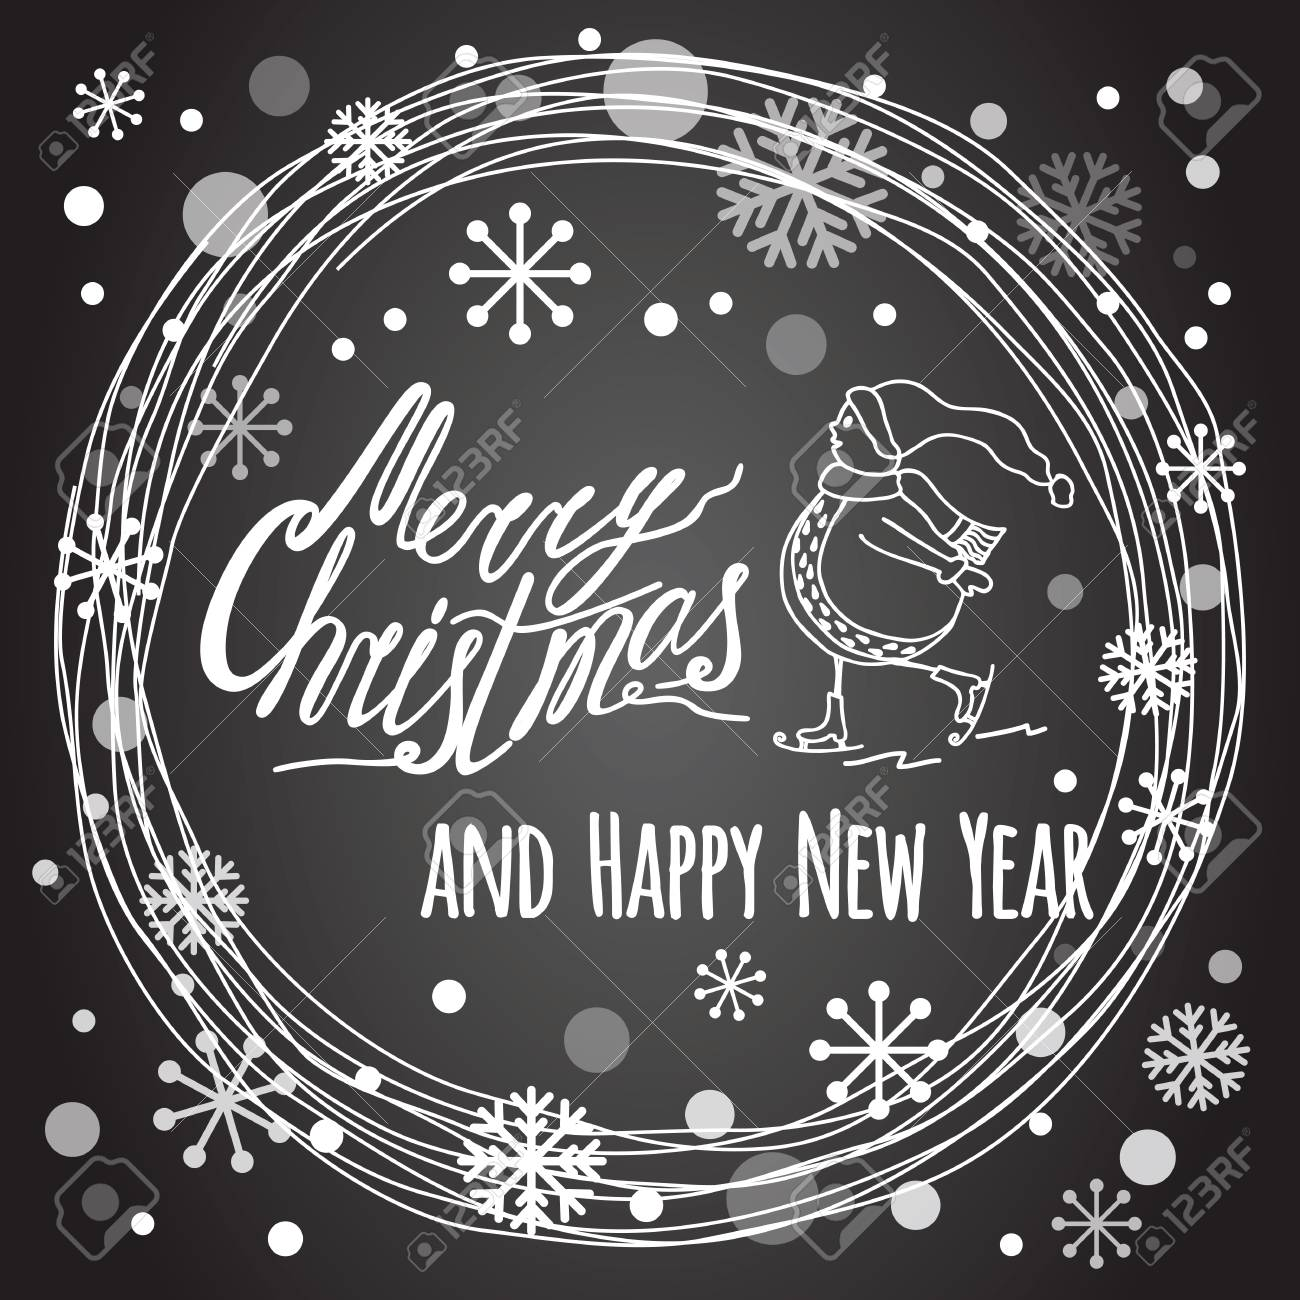 Christmas Board Design.Merry Christmas And Happy New Year Lettering Design Banner Text